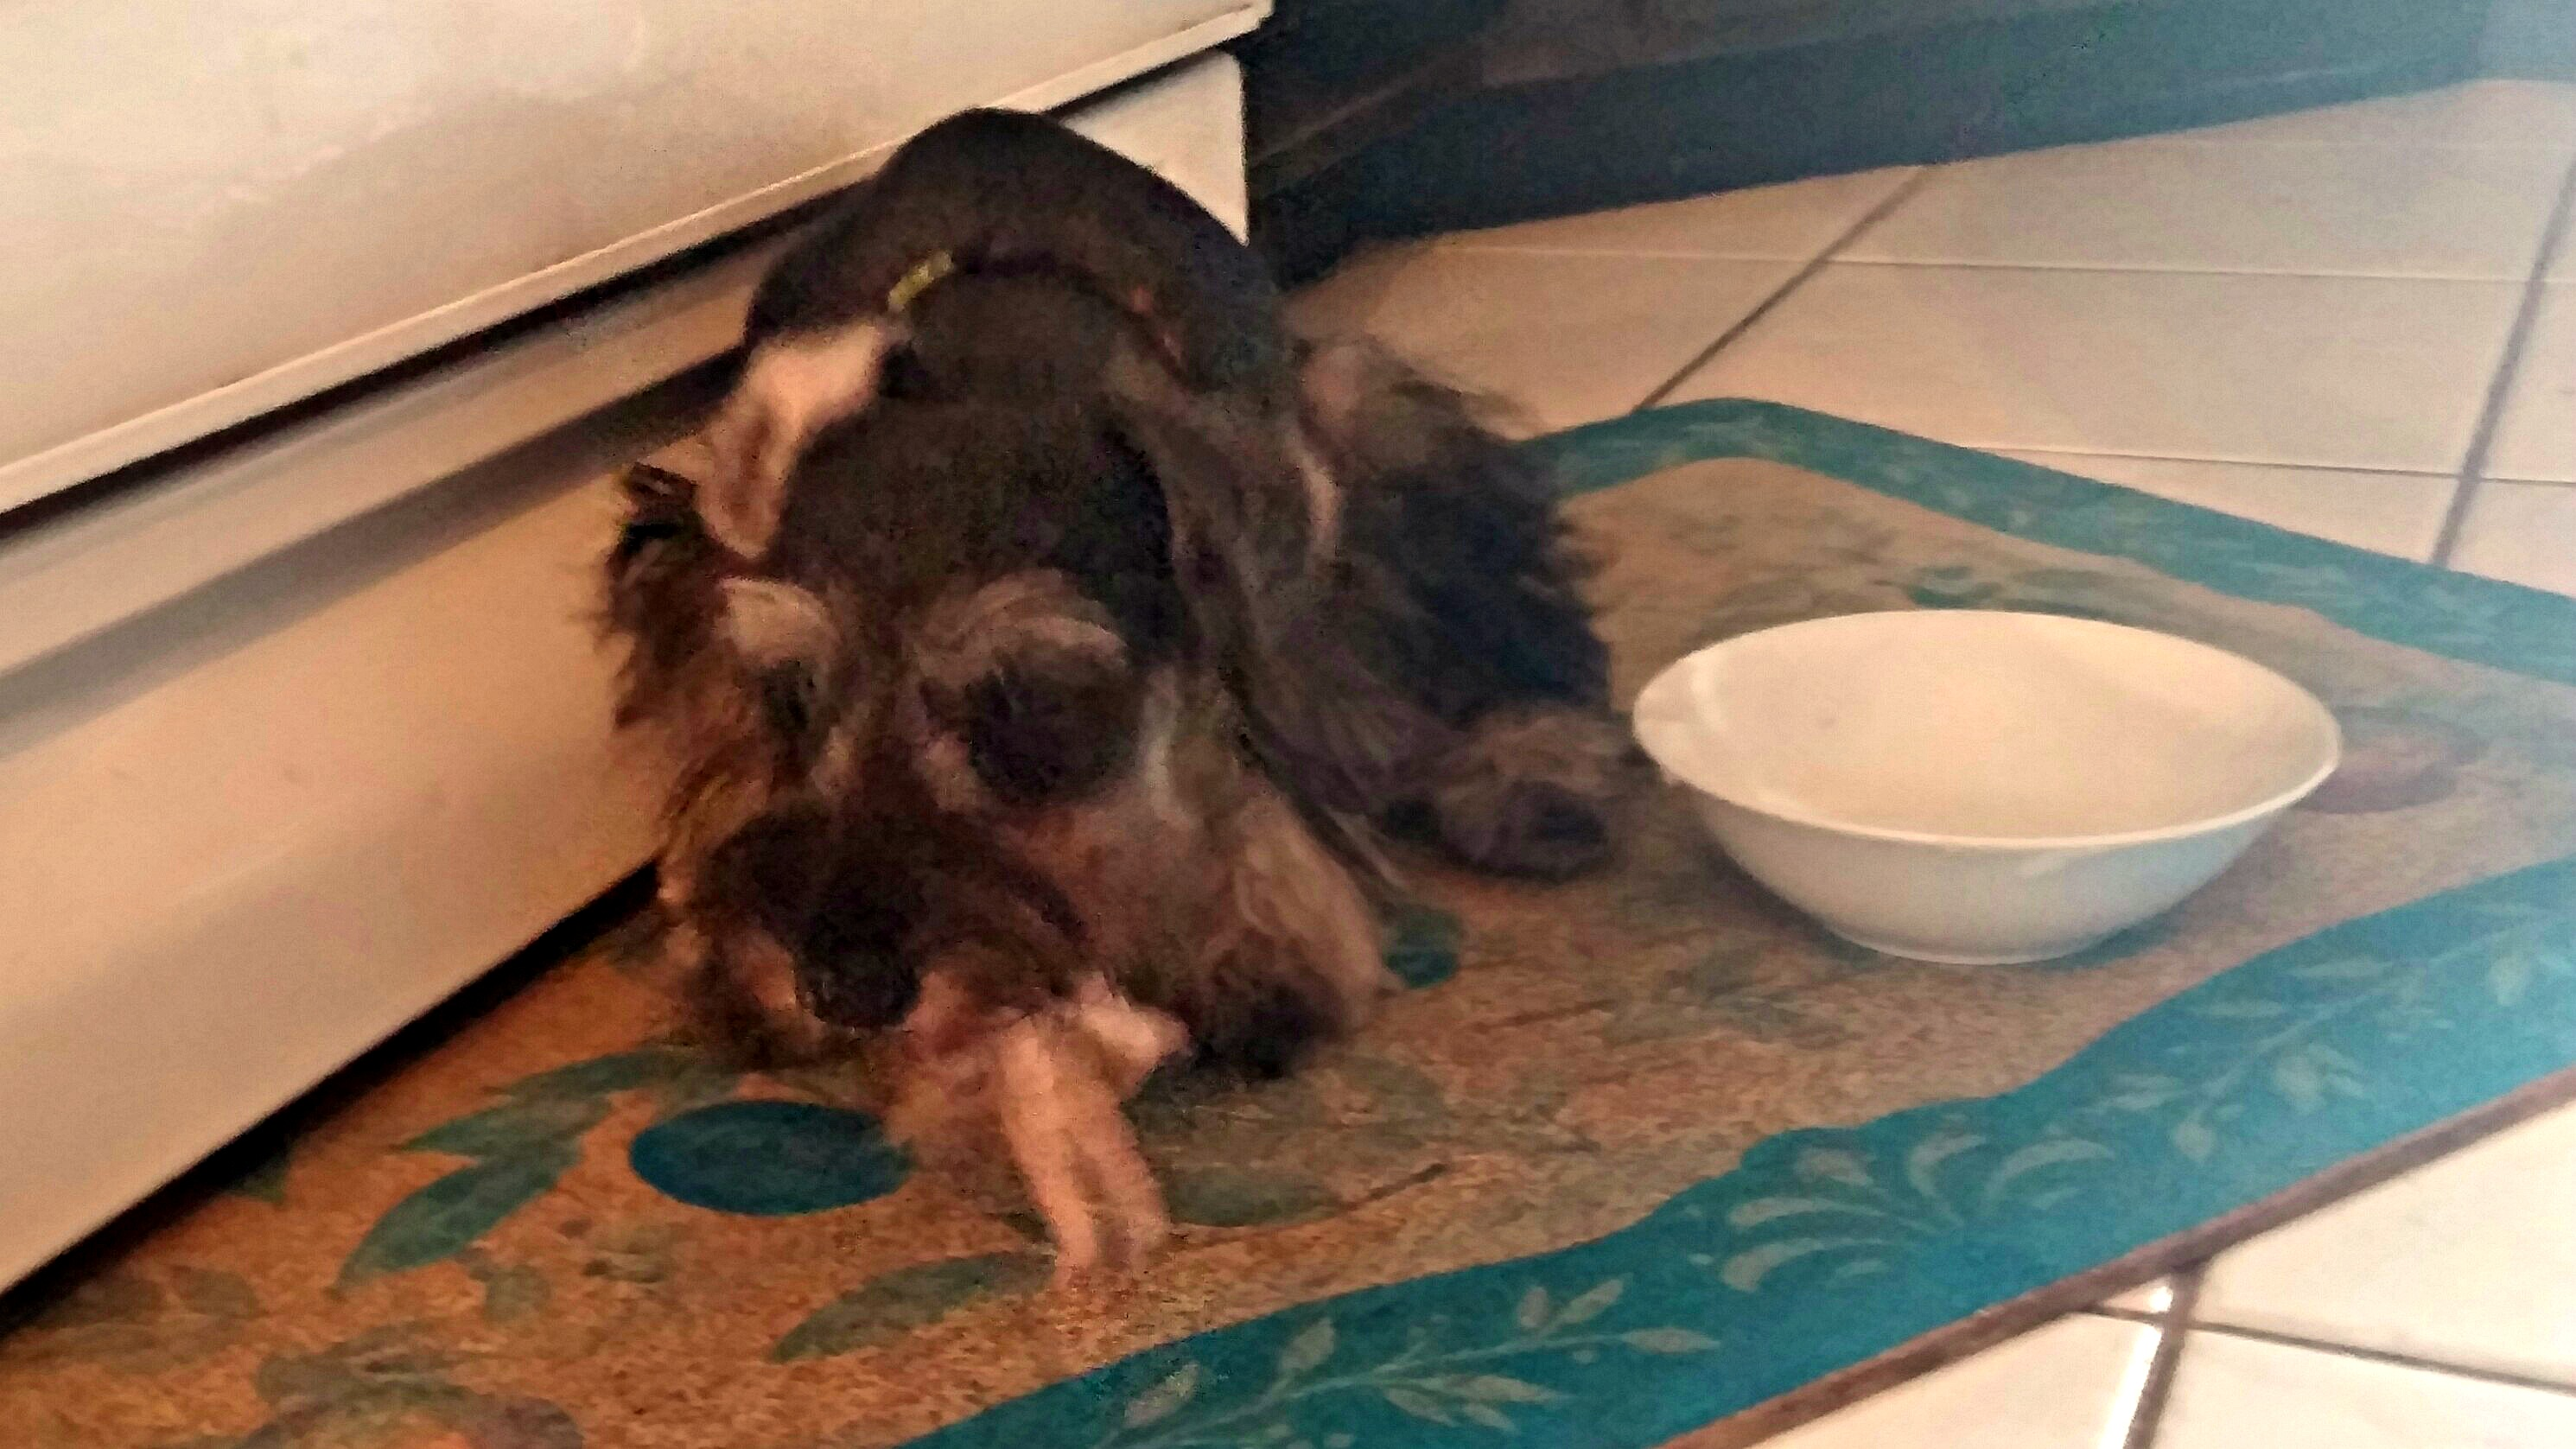 Xena eating chicken foot